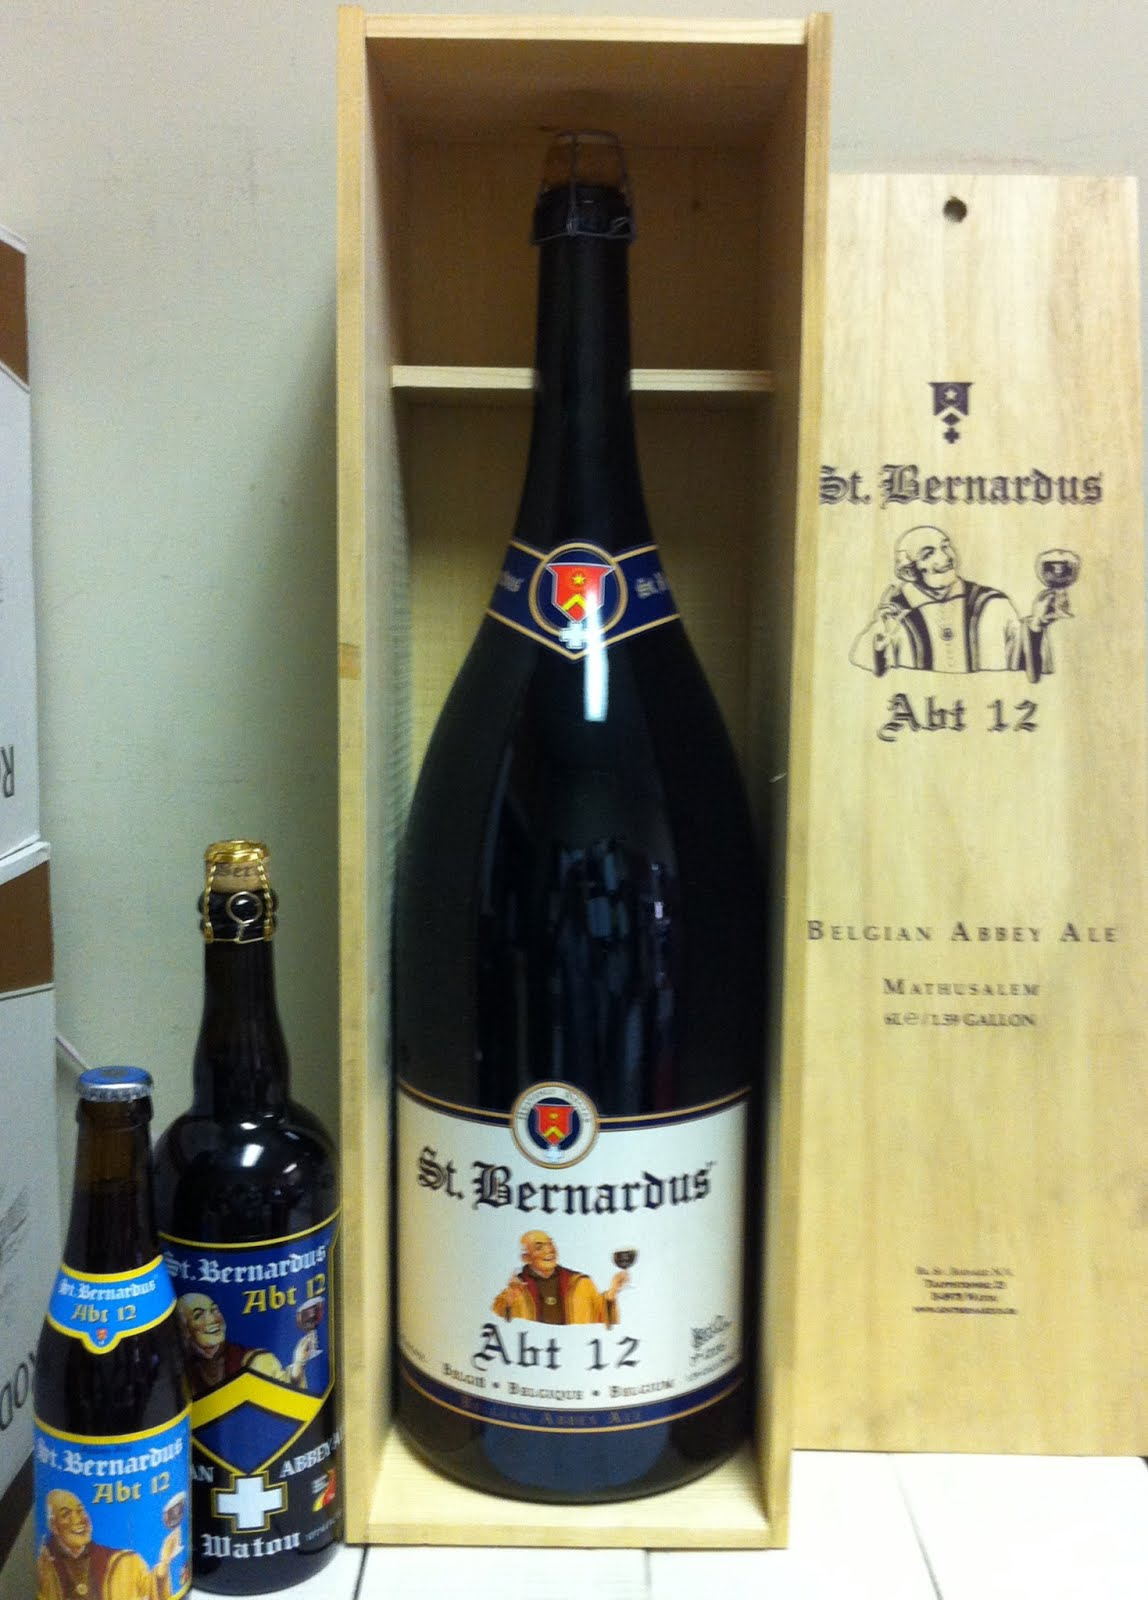 the wine and cheese place st bernardus 6 liter bottle. Black Bedroom Furniture Sets. Home Design Ideas